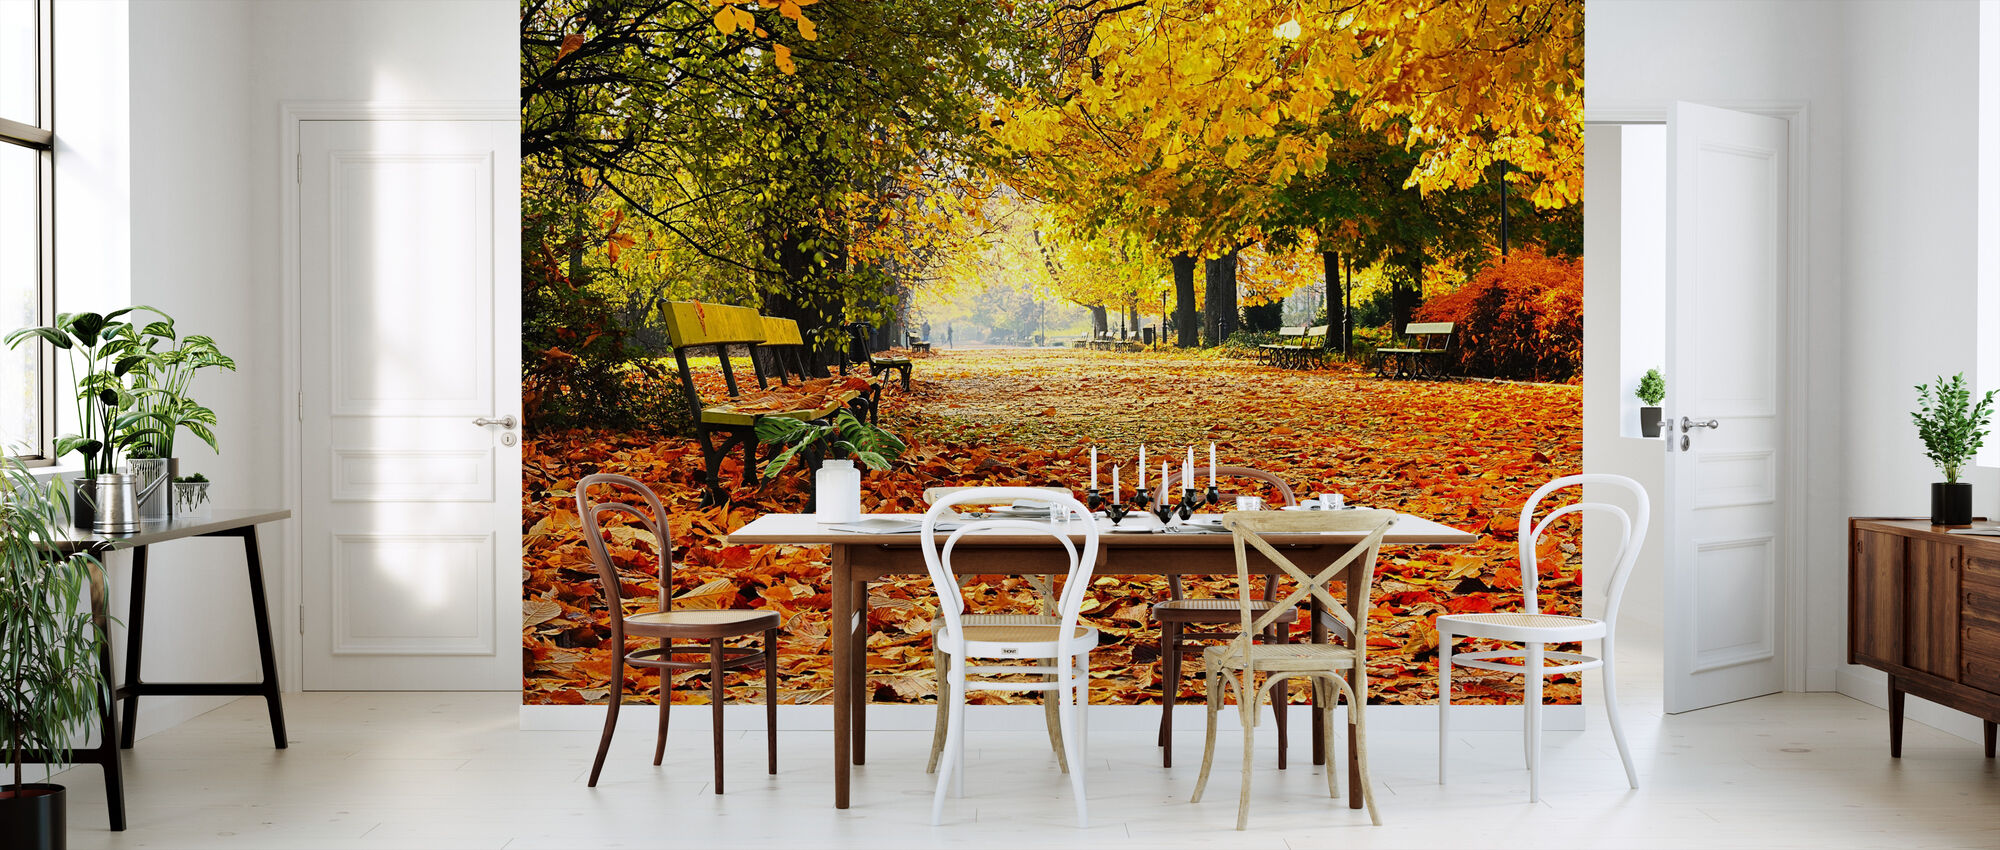 Autumn Park - Wallpaper - Kitchen